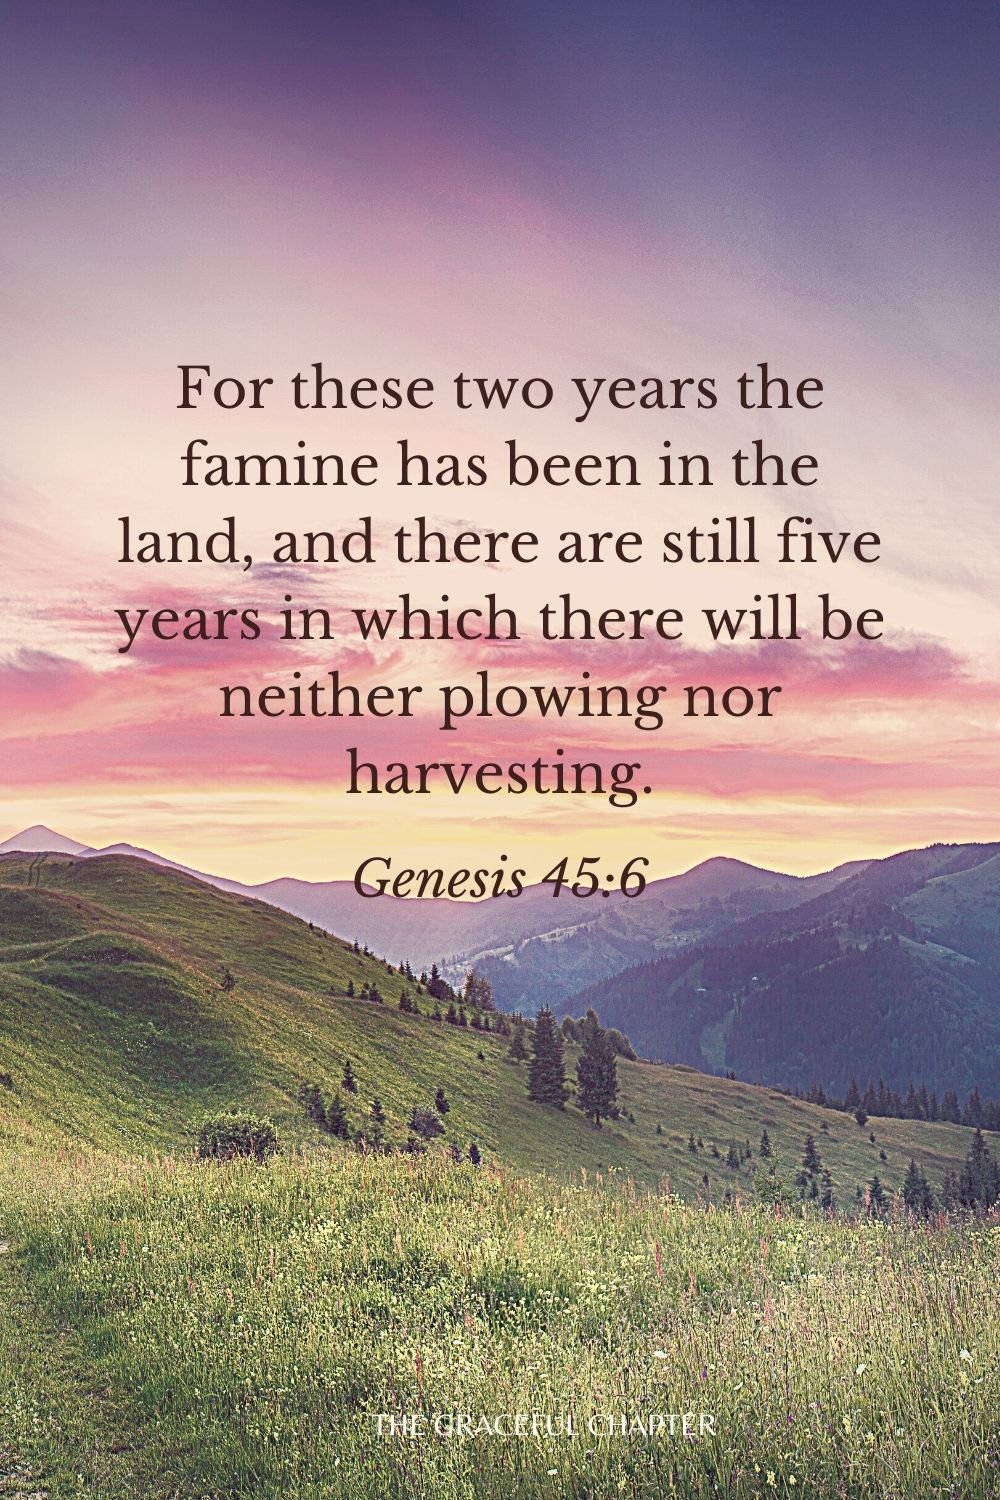 For these two years the famine has been in the land, and there are still five years in which there will be neither plowing nor harvesting. Genesis 45:6